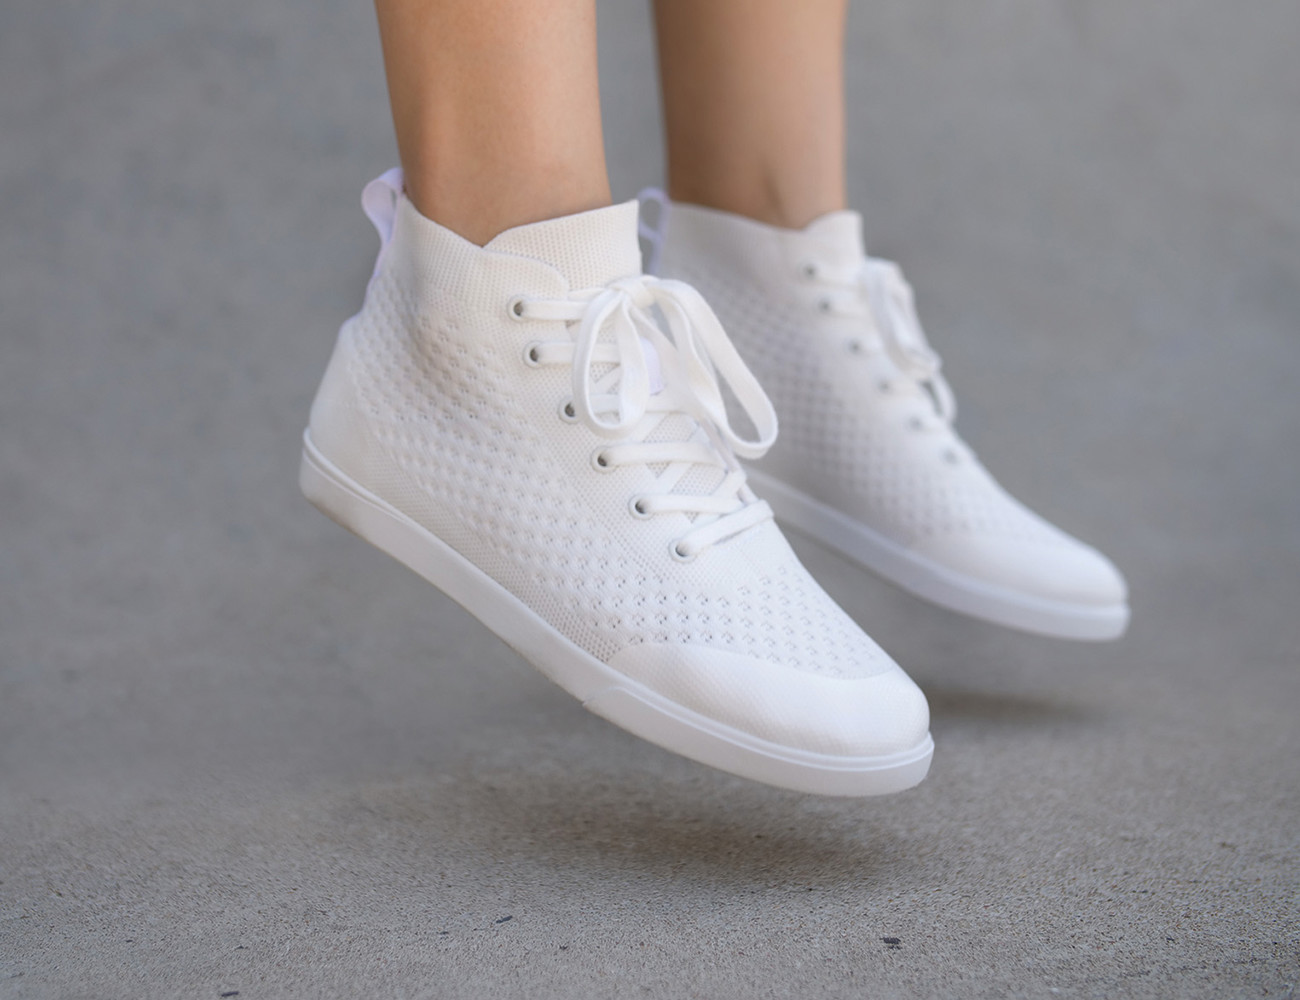 The Legacy Minimalist High Top Sneakers